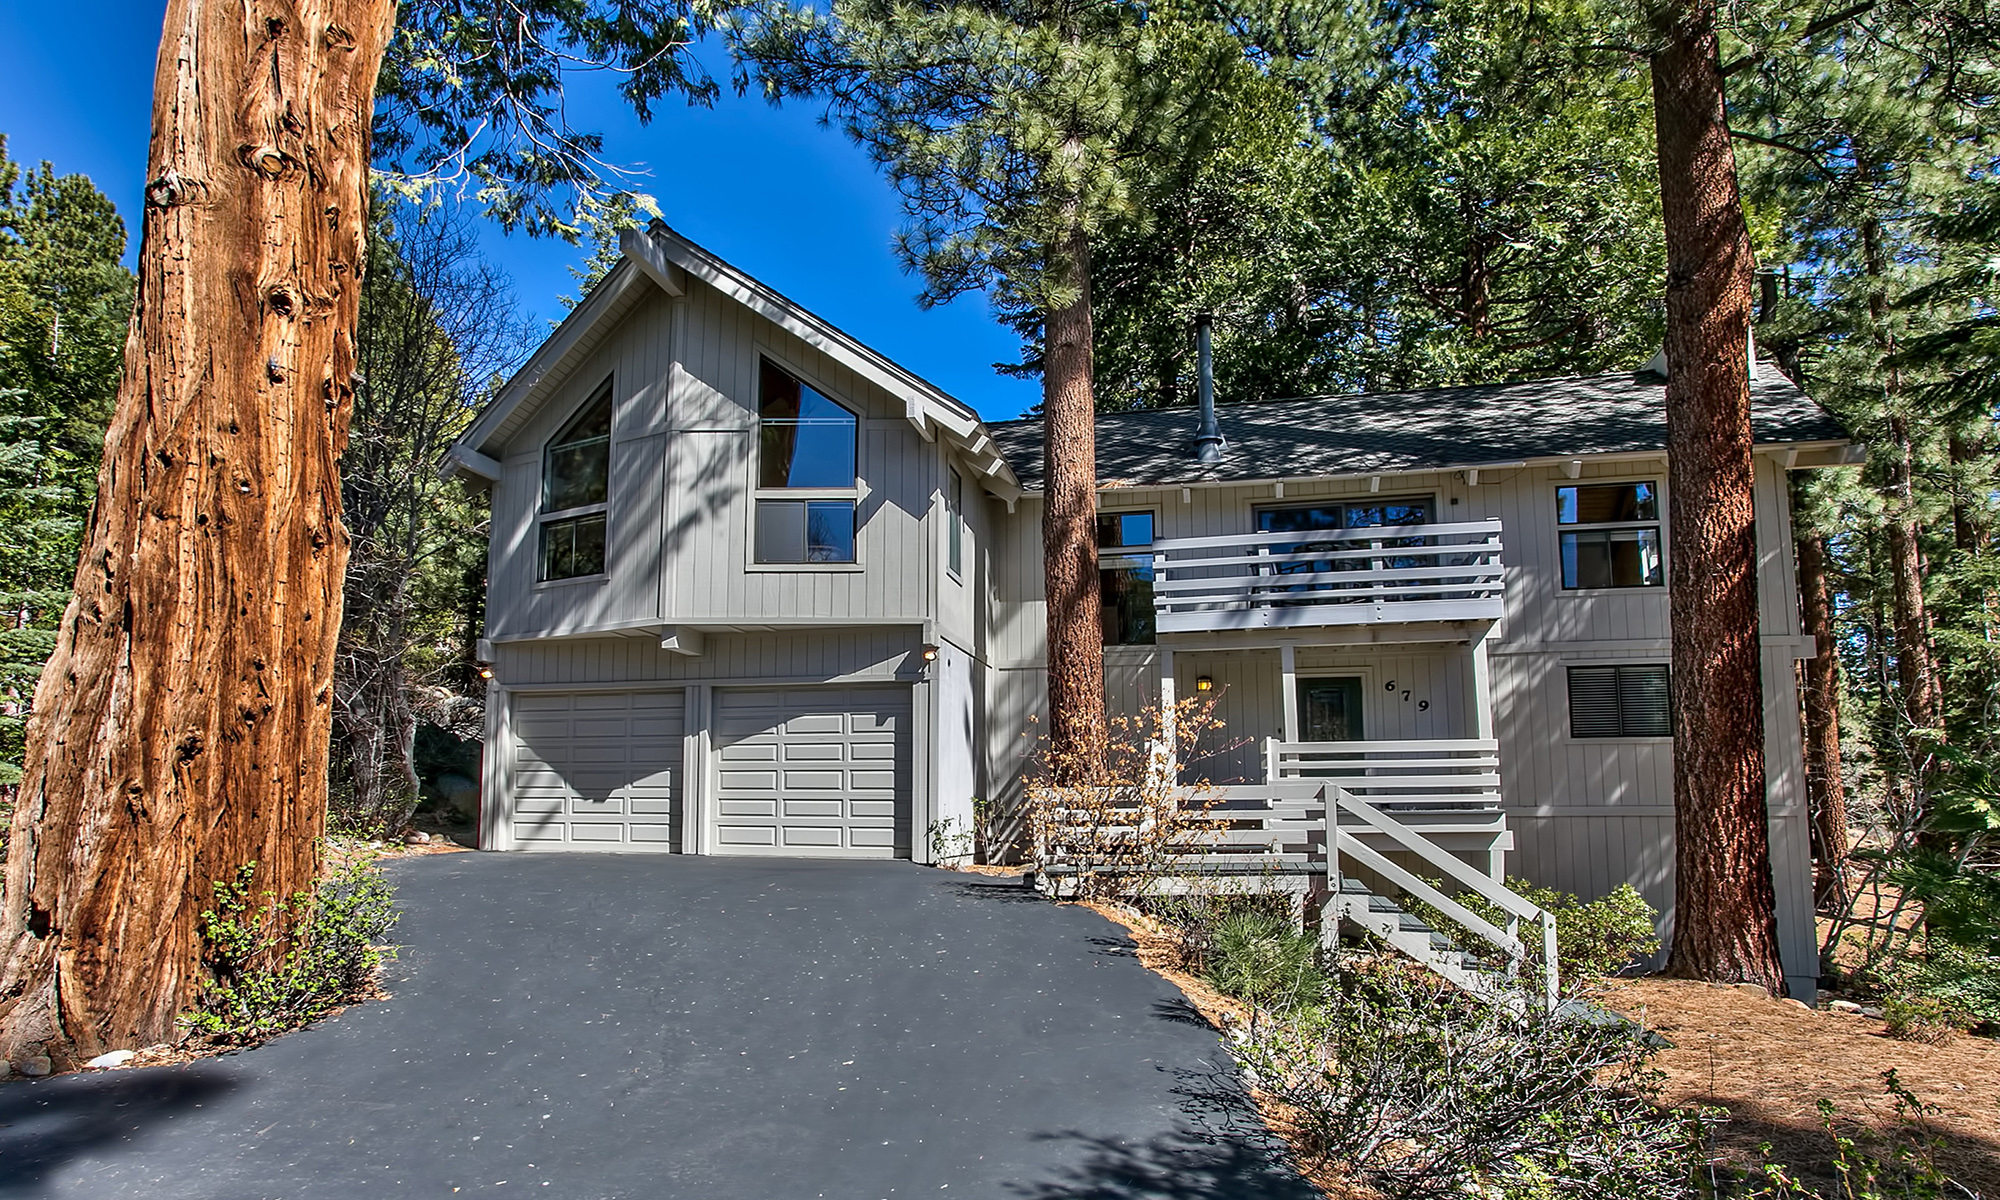 Single Family Home for Sale at 679 Alpine View Drive Incline Village, Nevada 89451 United States